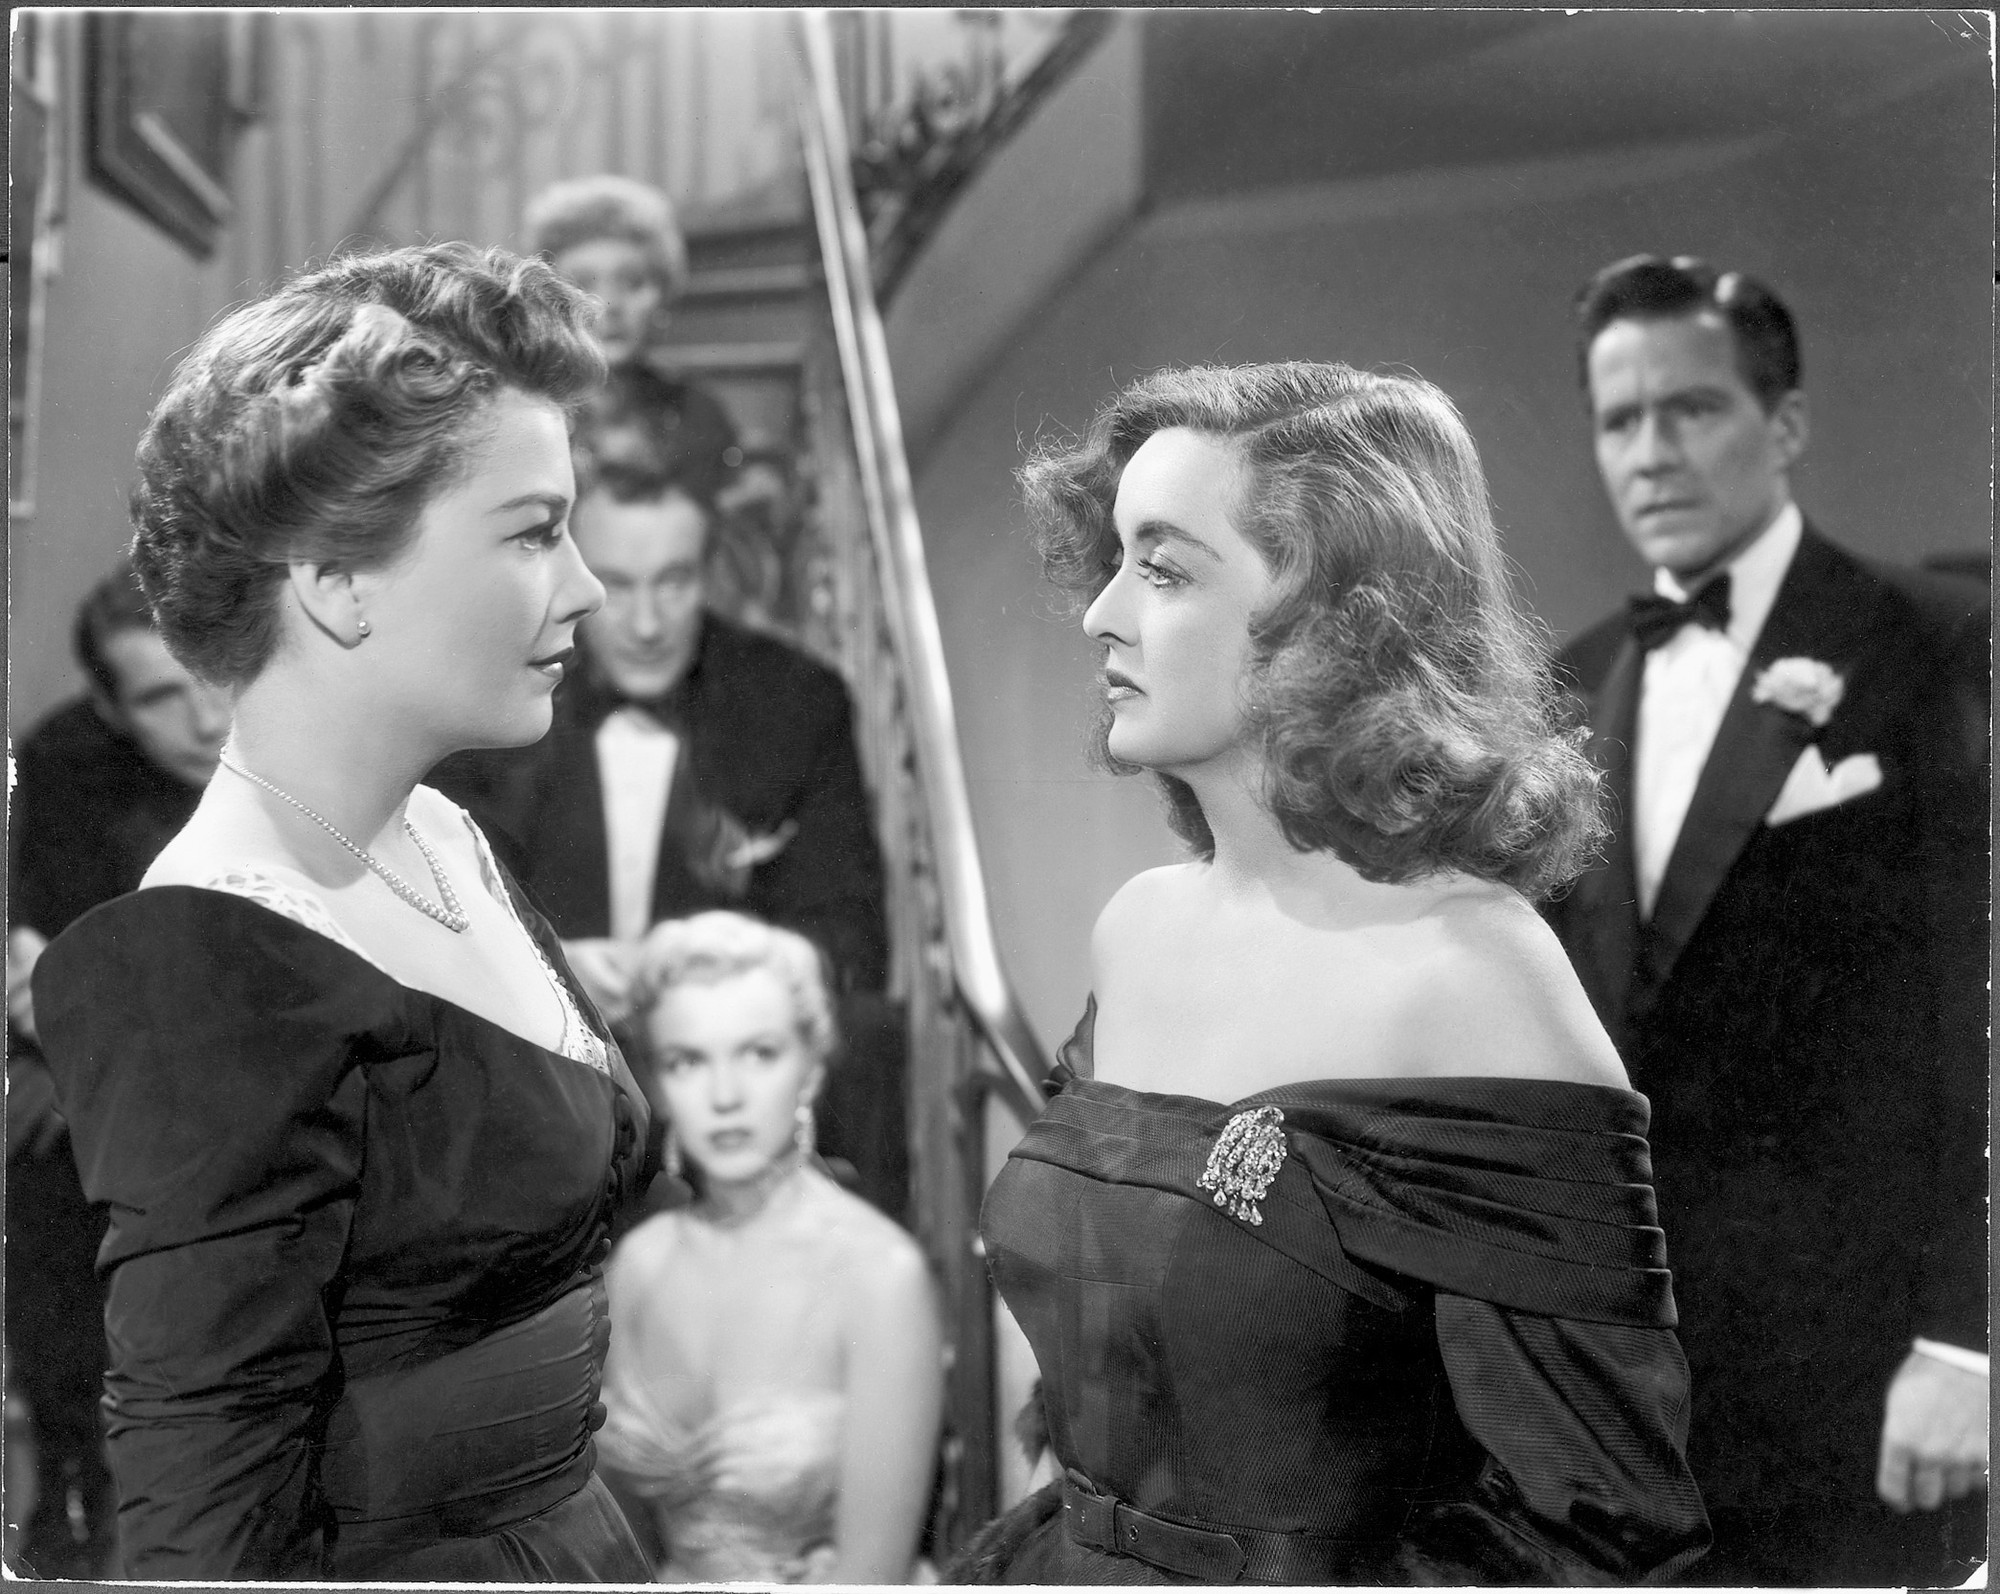 All About Eve. 1950. USA. Written and directed by Joseph L. Mankiewicz, based on a story by Mary Orr. Photo courtesy of MoMA archive